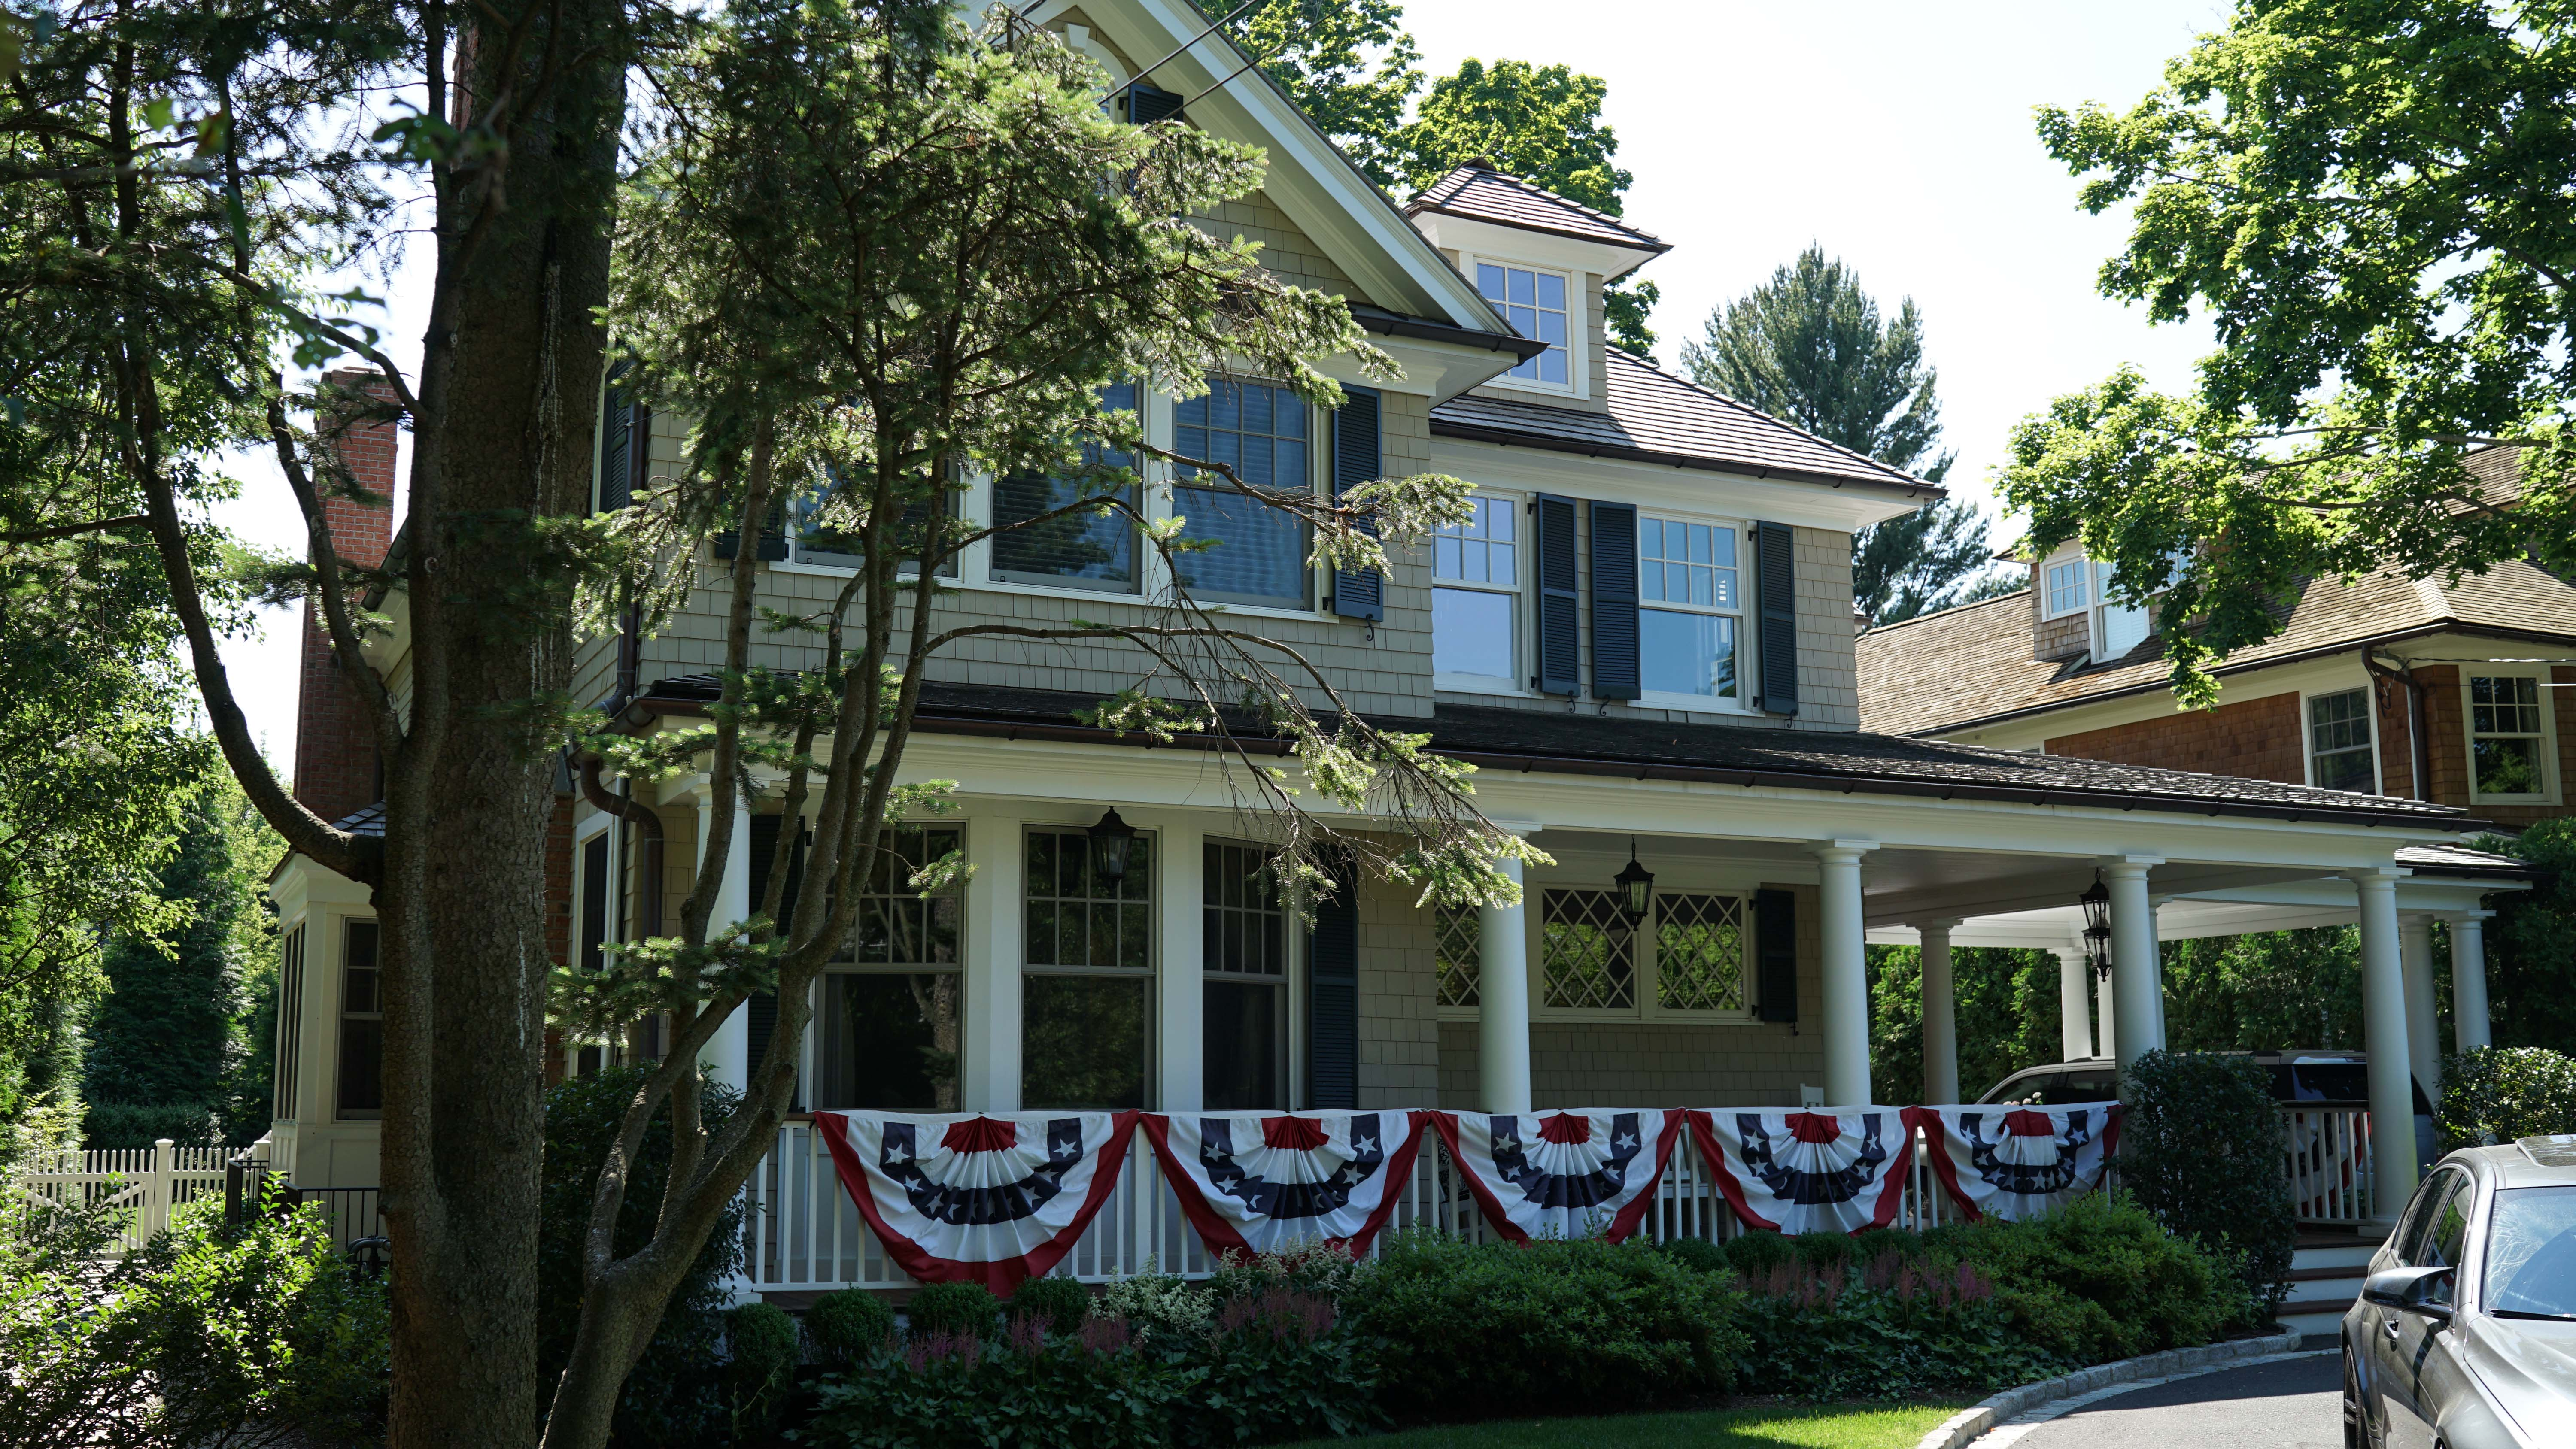 American flags on house 1